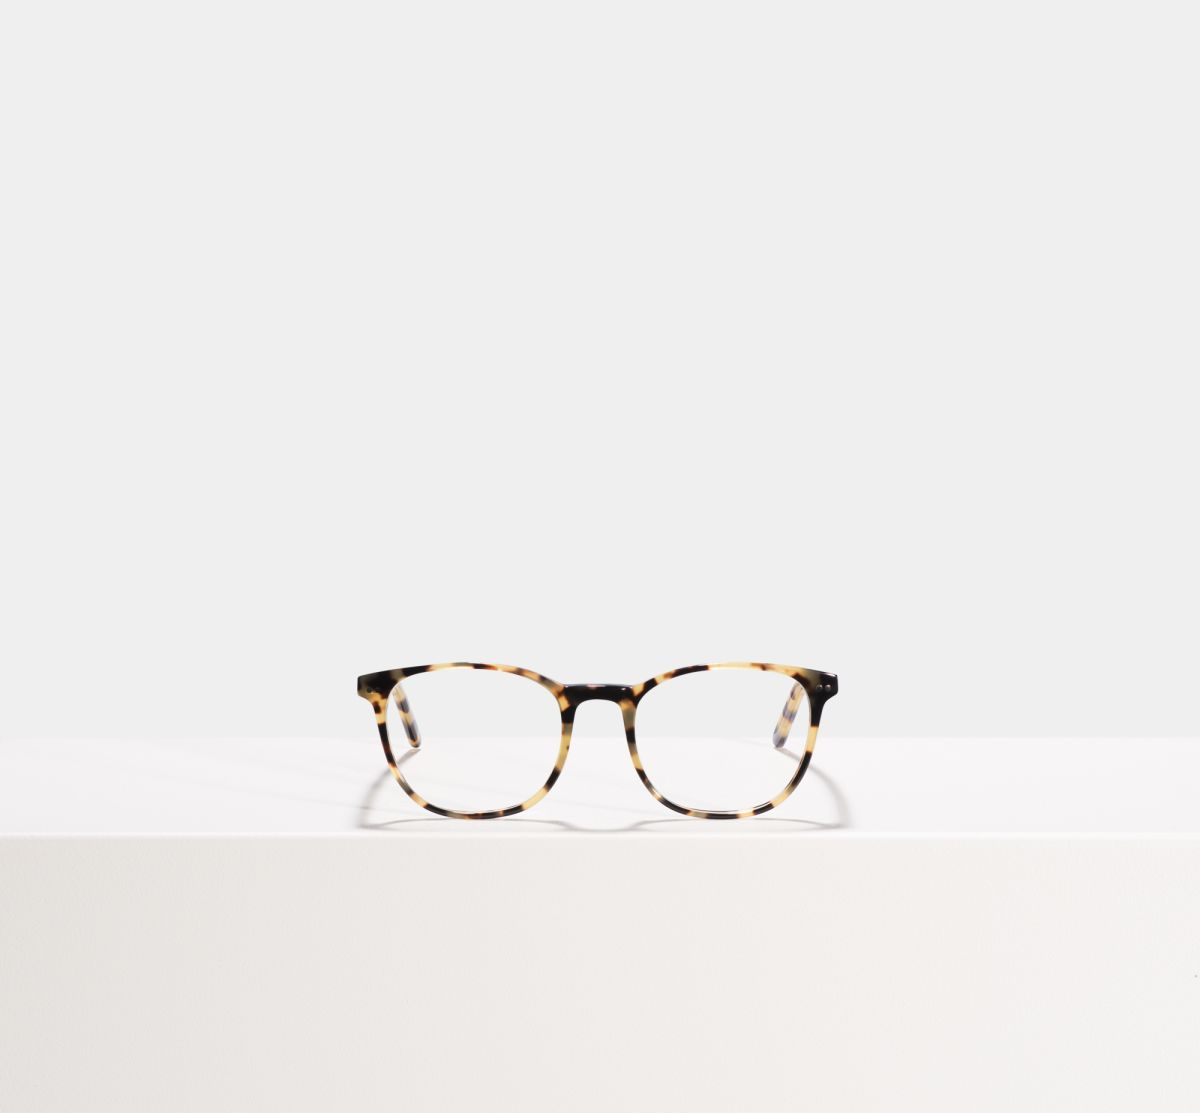 Saul rund Acetat glasses in Bananas by Ace & Tate